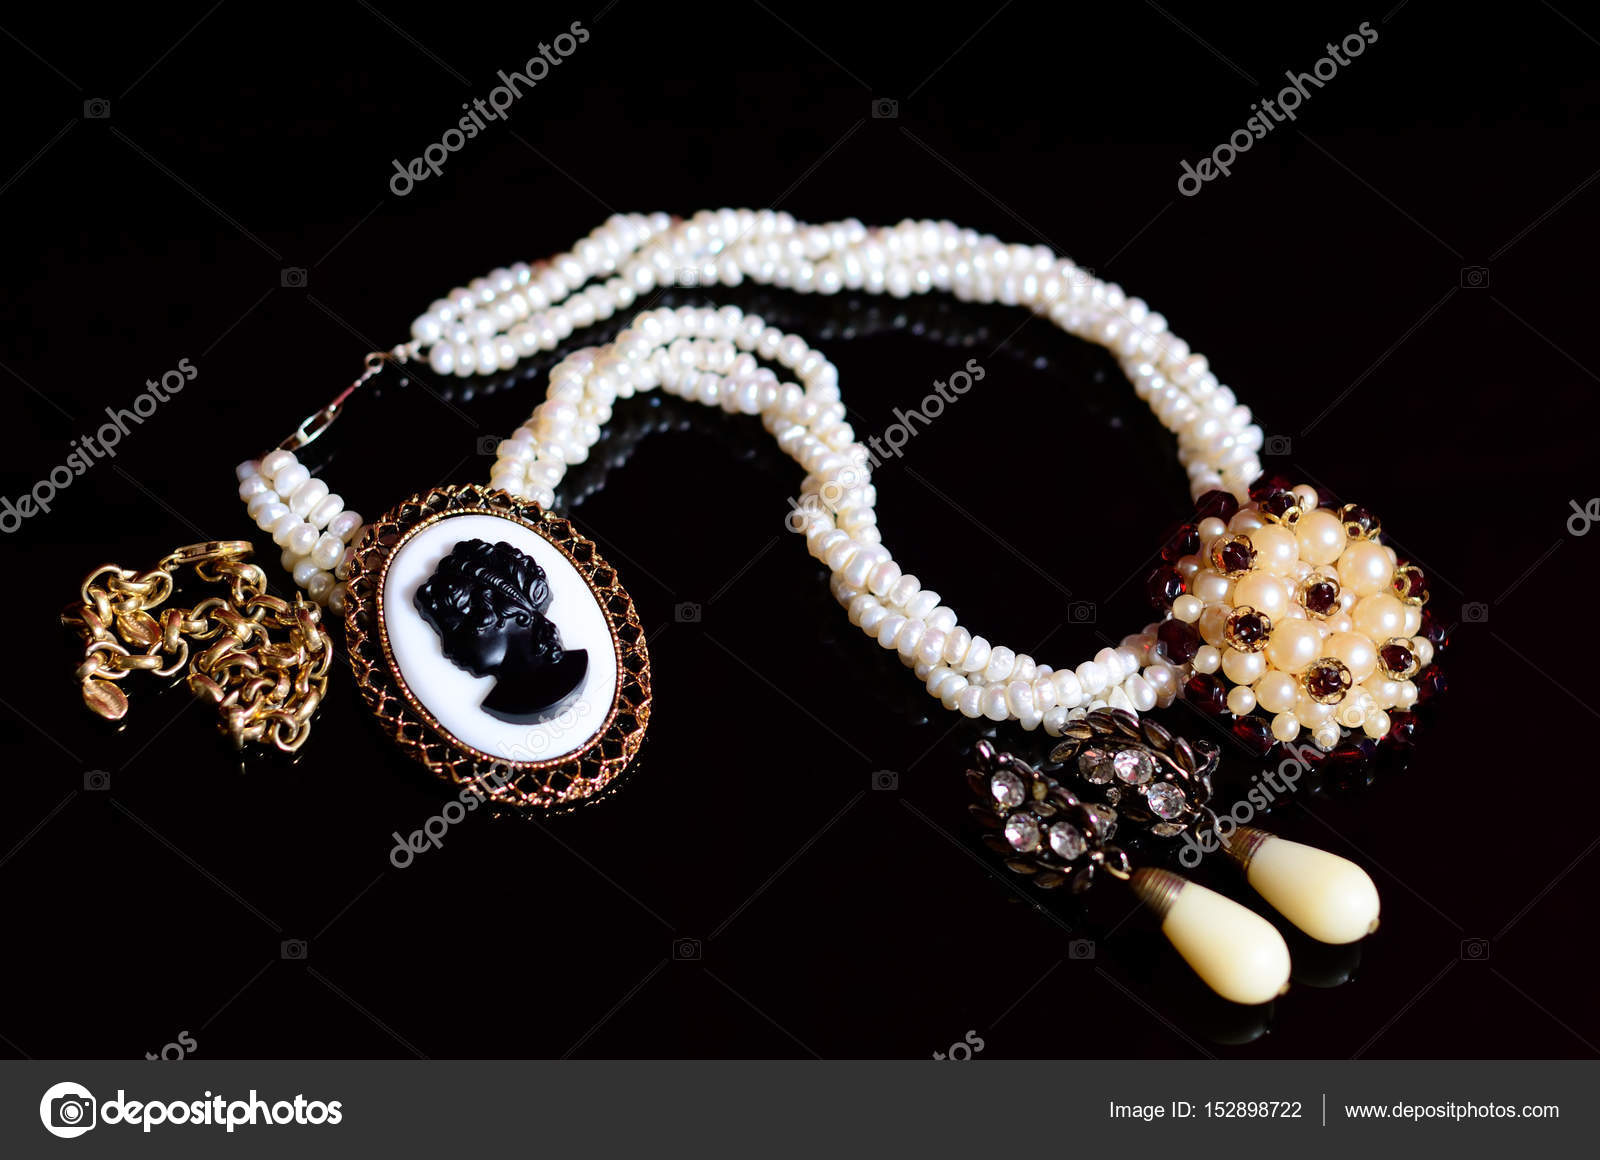 Antique vintage cameo jewelry stock photo oleksandrua 152898722 antique vintage cameo jewelry photo by oleksandrua aloadofball Choice Image